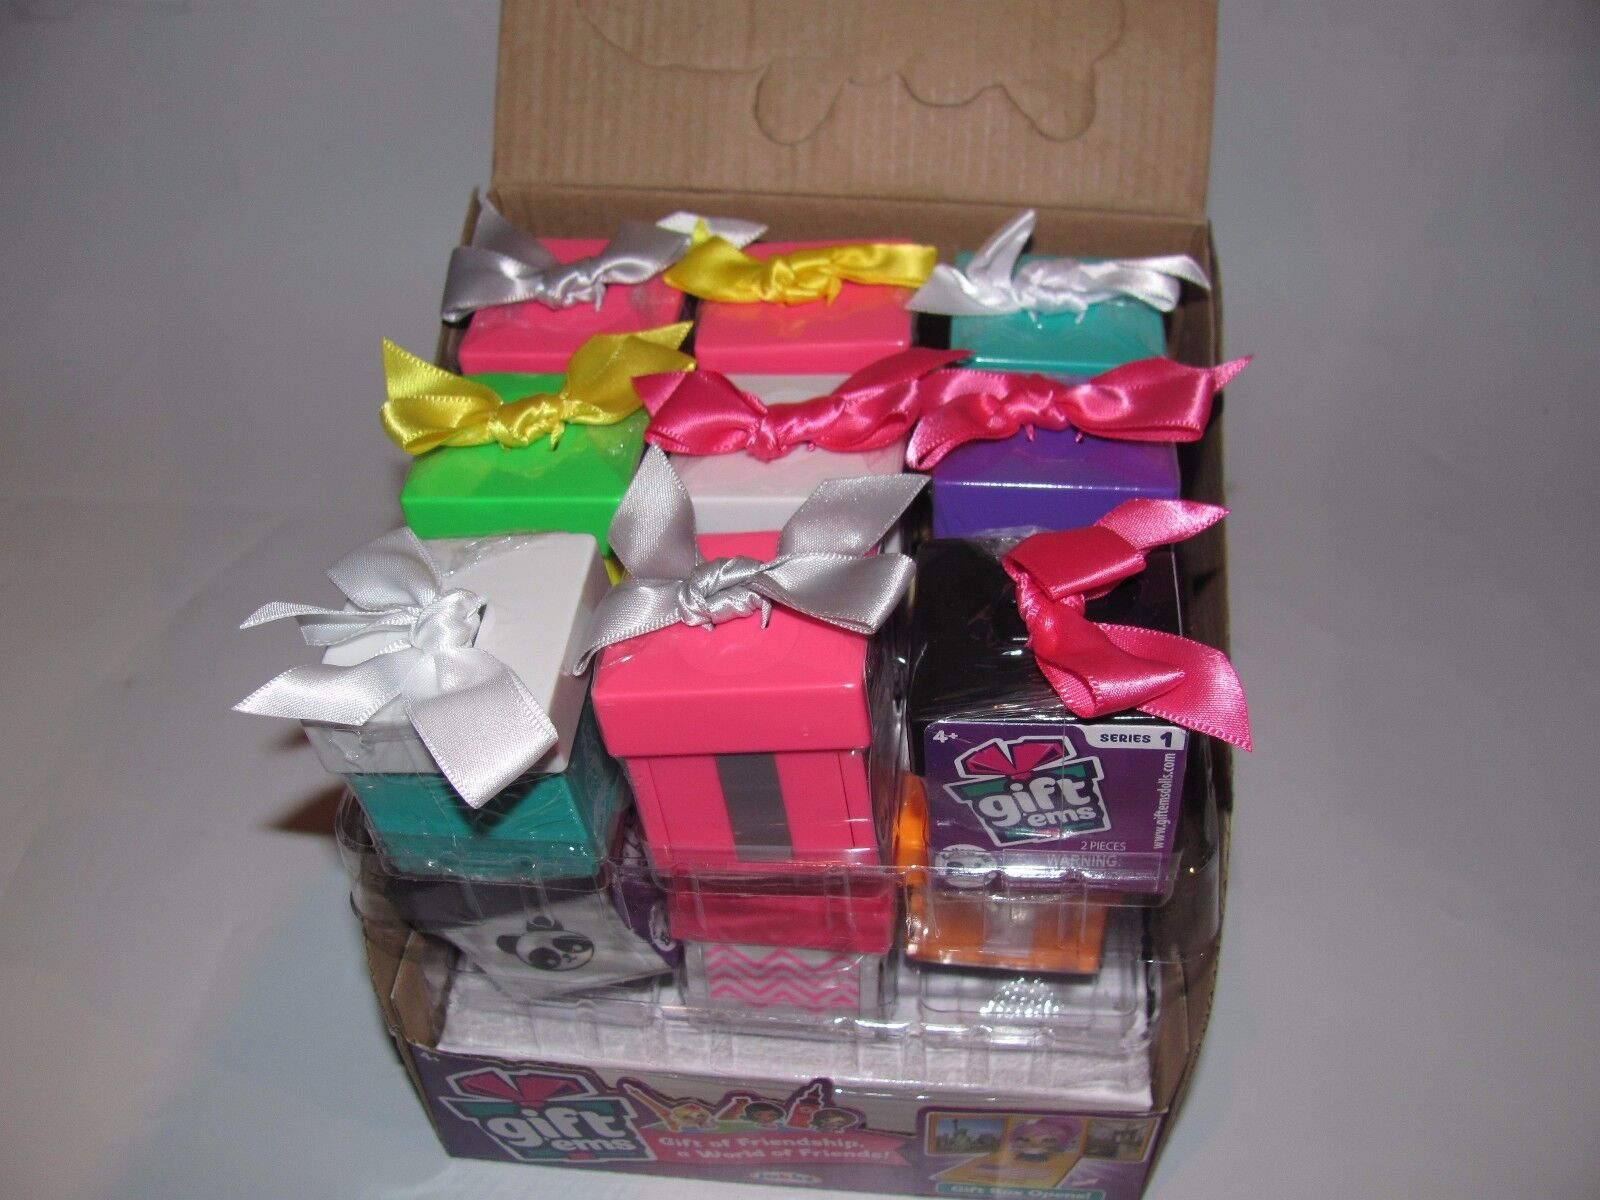 (1) BOX OF (18) GIFT'EMS SERIES 1 BLIND GIFT BOXES WITH FIGURE NEW JAKKS PACIFIC